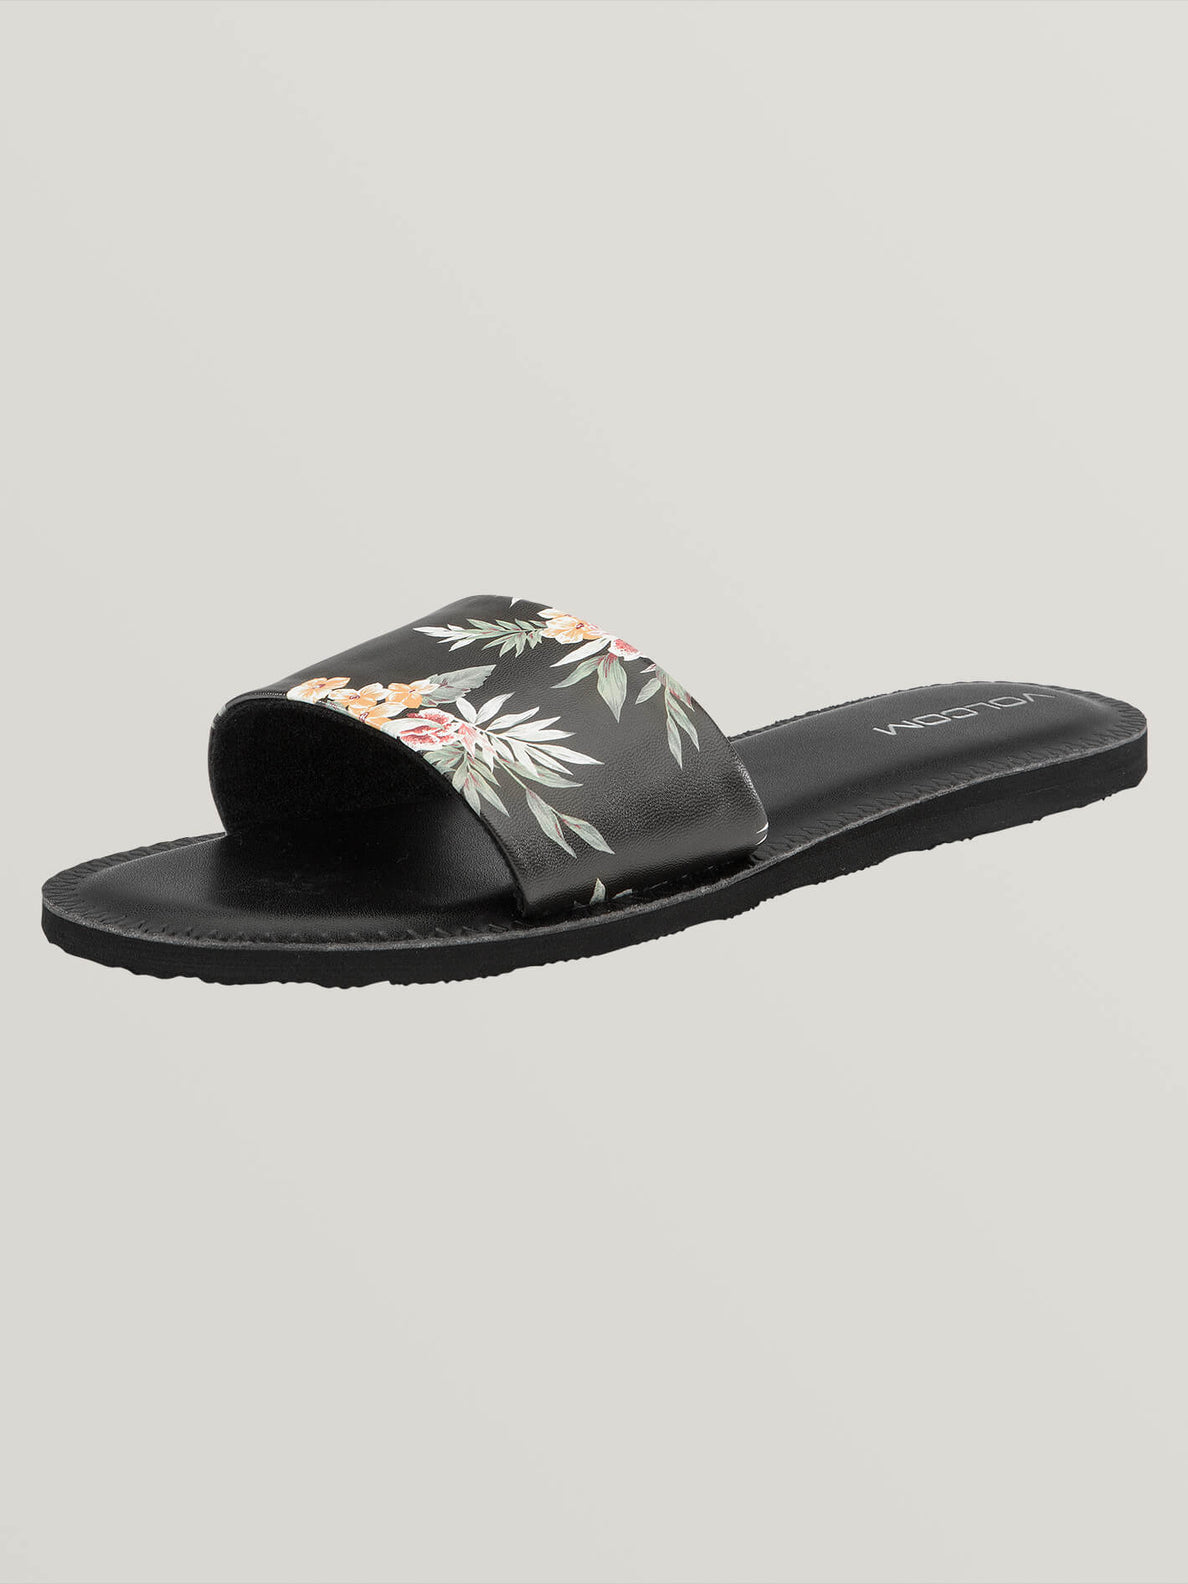 Simple Slide Sandals In Black Combo, Back View